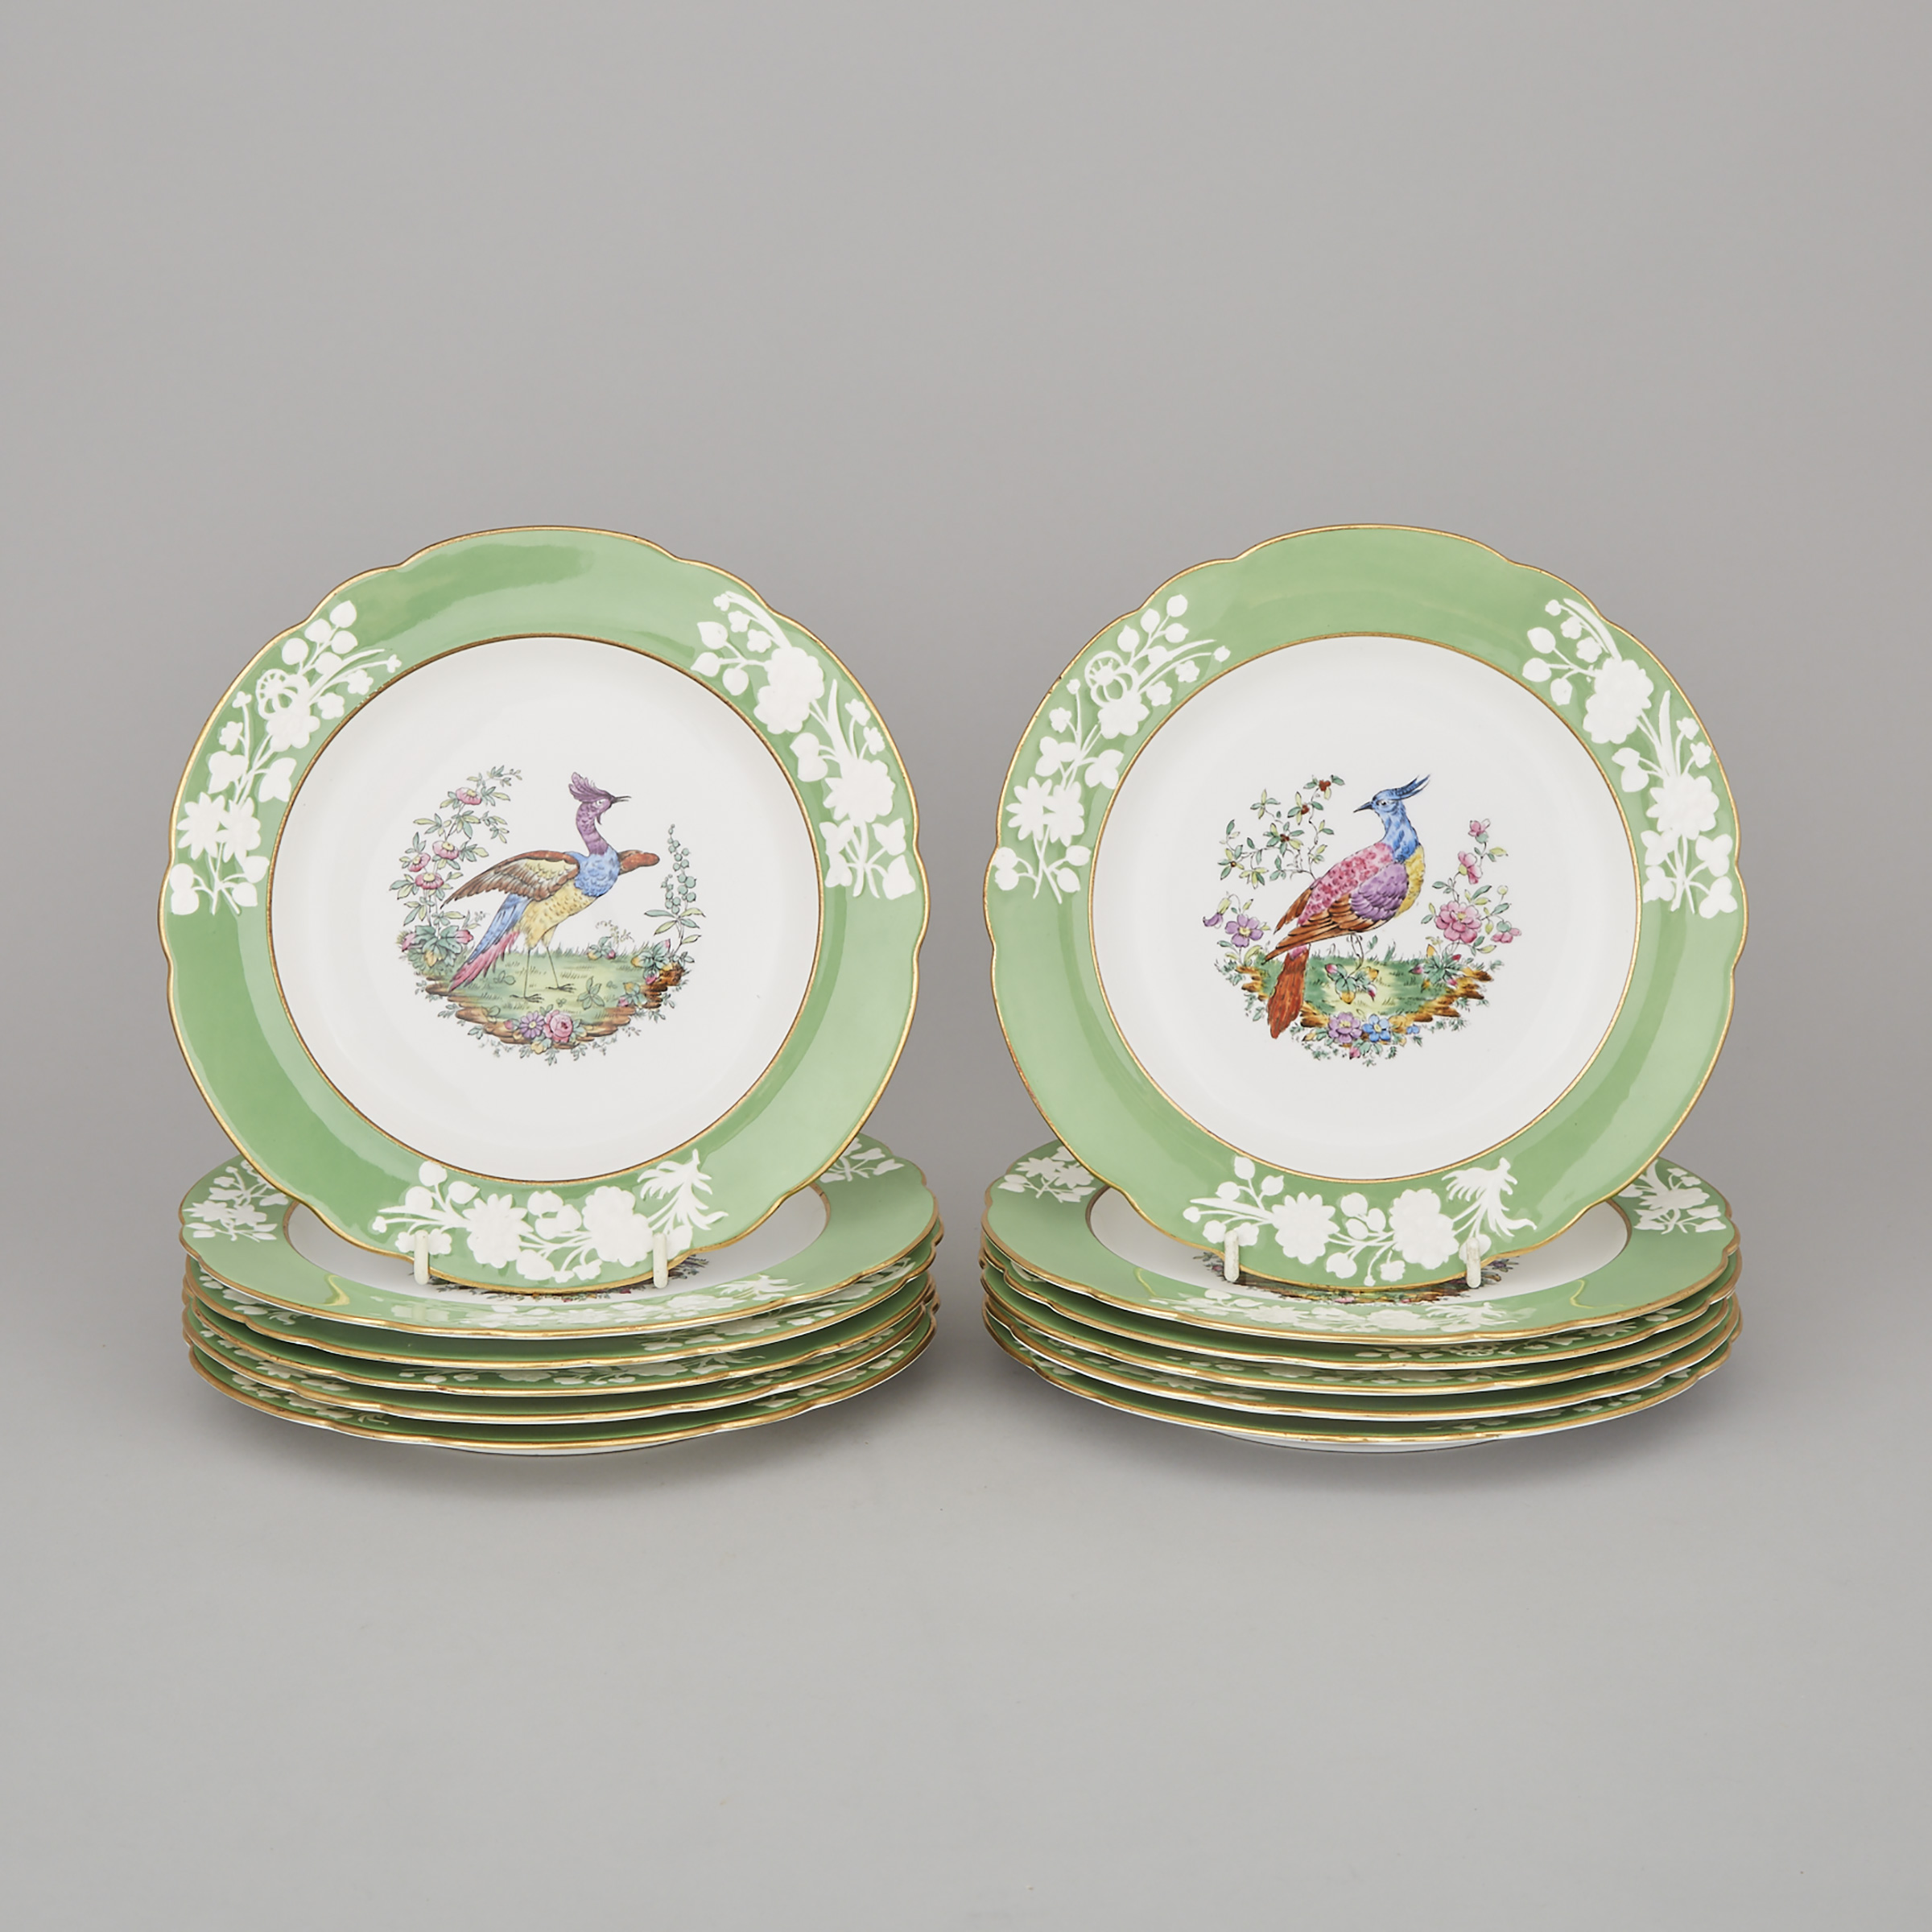 Twelve Copeland Spode Apple Green Banded 'Liverpool Birds' Plates, early 20th century